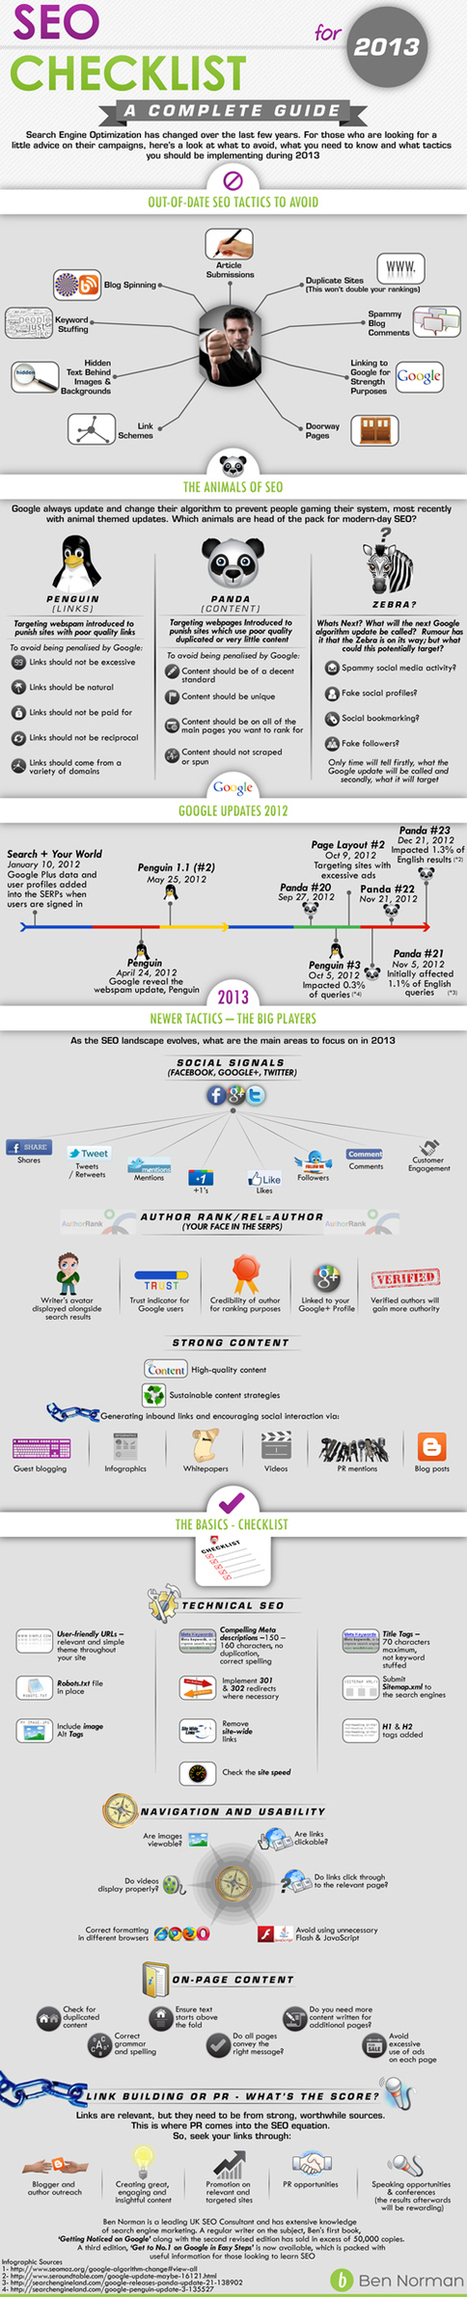 SEO Checklist for 2013 (Infographic)   Beyond Marketing   Scoop.it